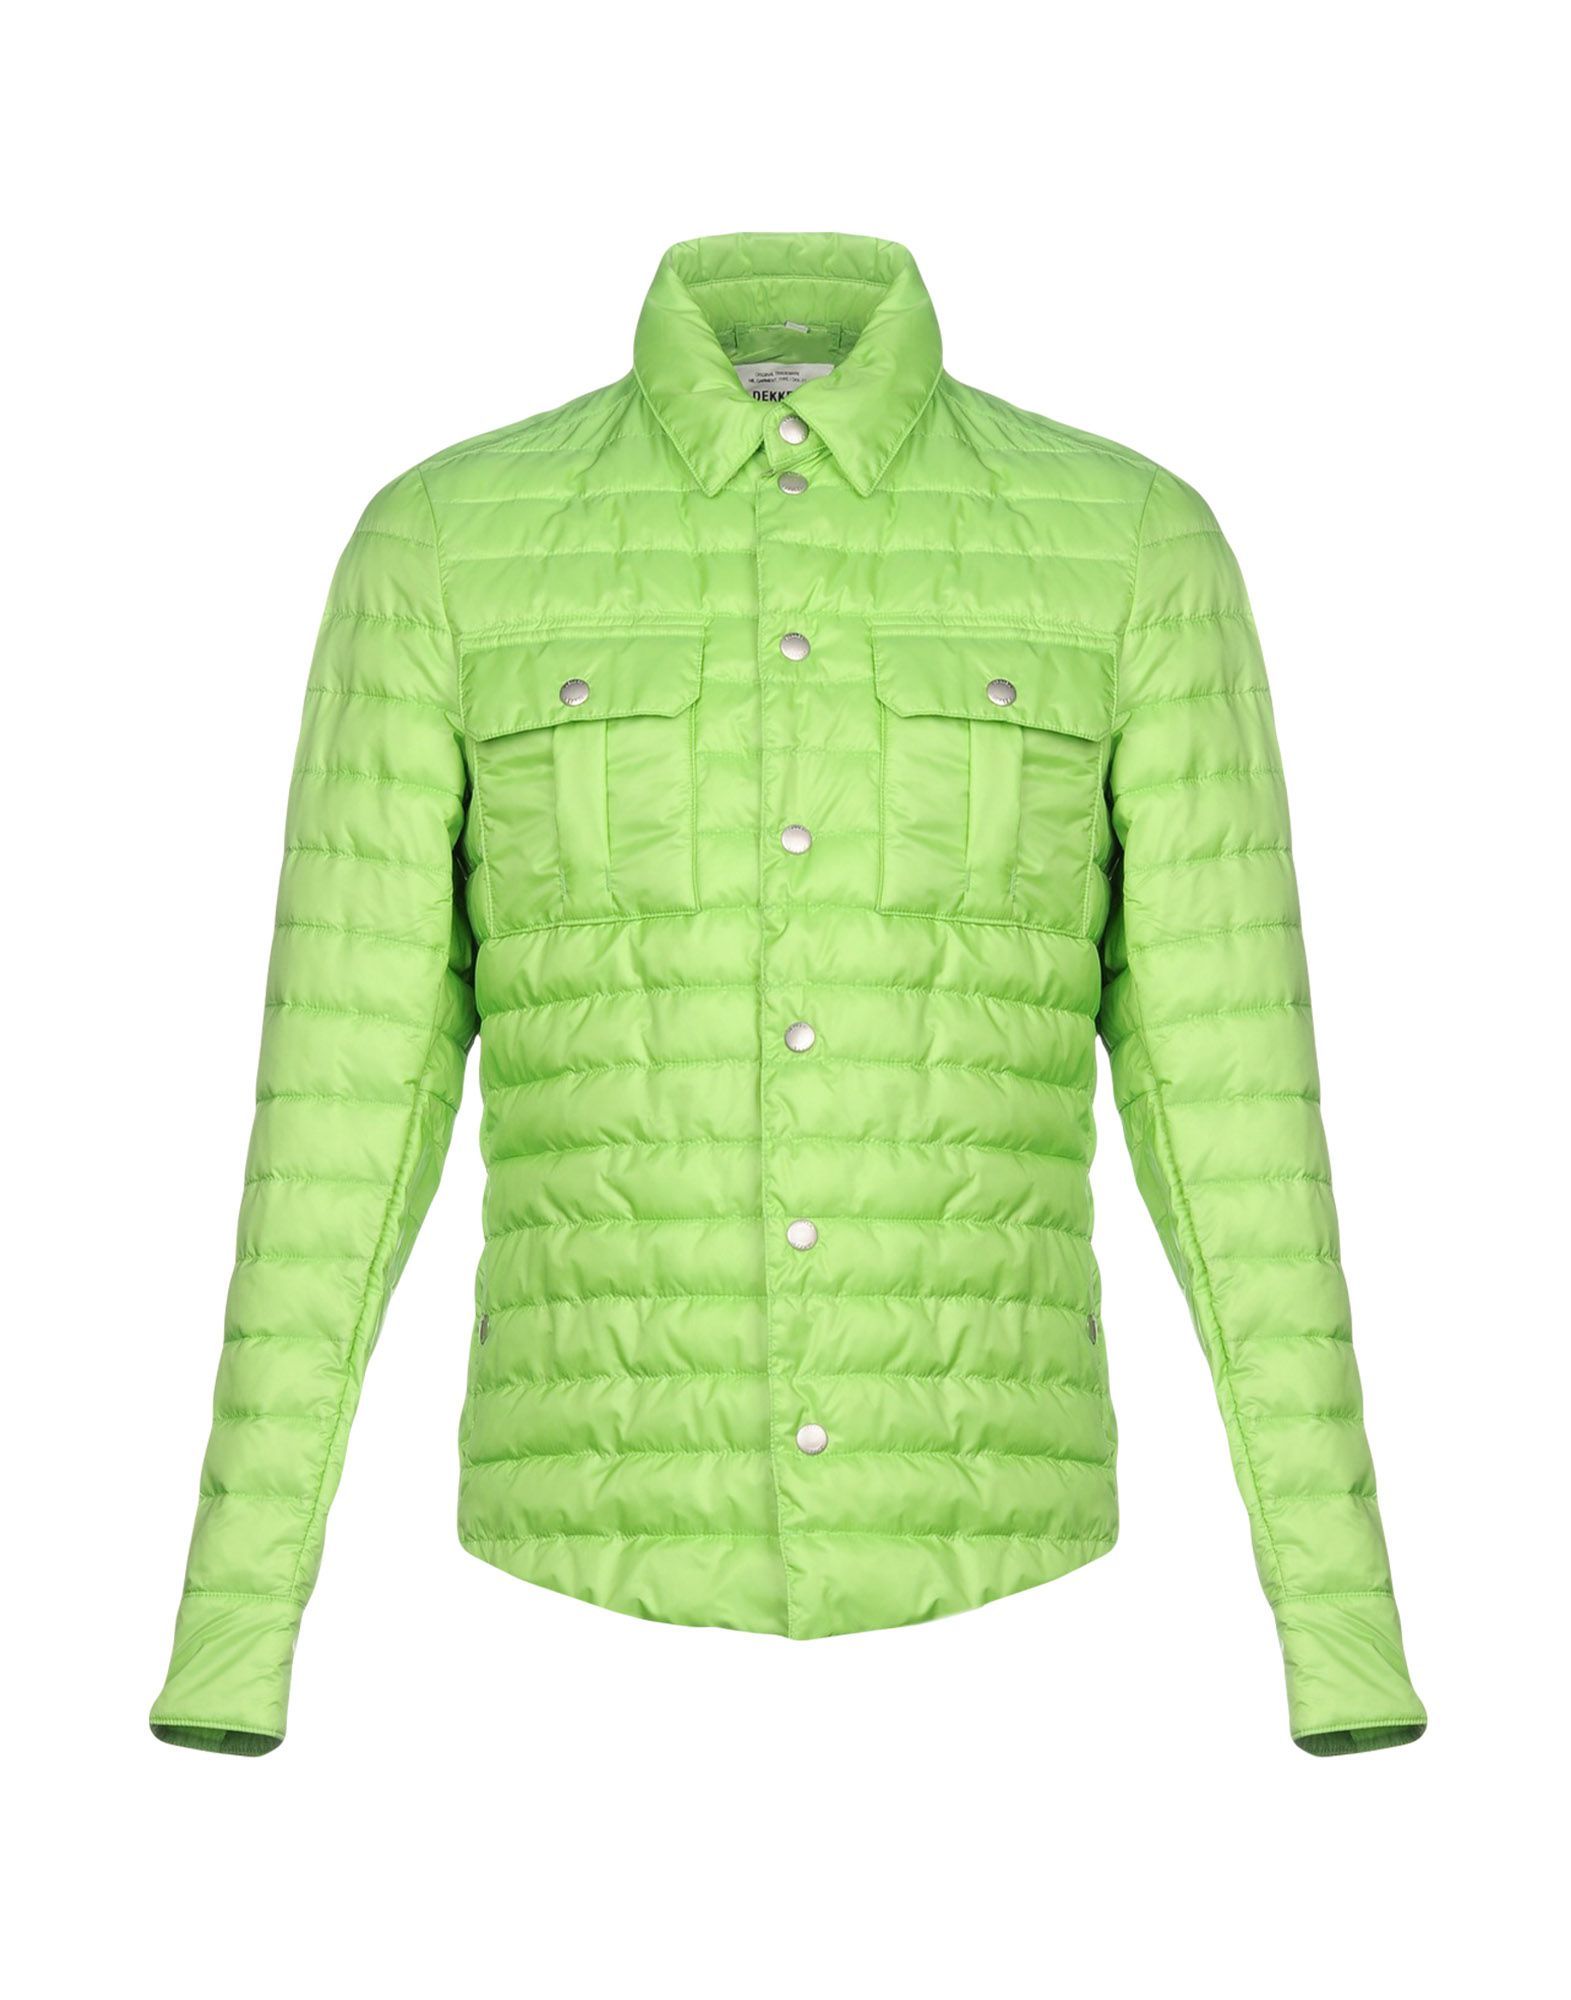 COATS & JACKETS - Synthetic Down Jackets Dekker Clearance Sneakernews Cheap With Paypal Clearance Affordable yNHtg